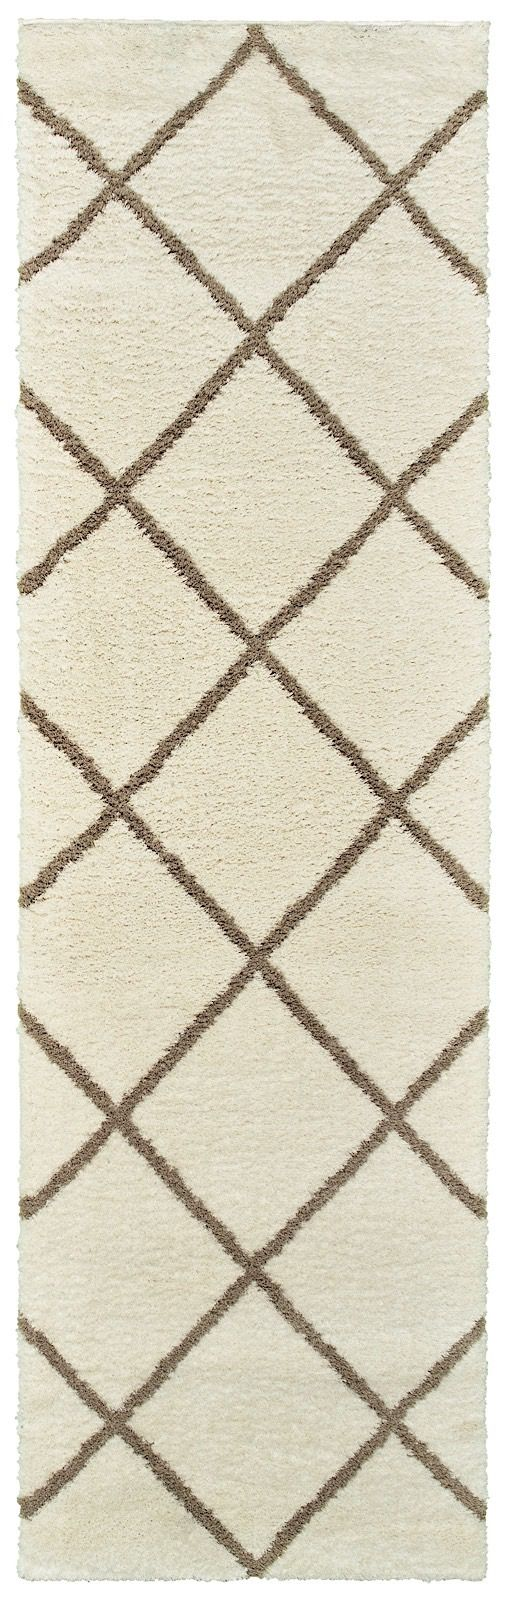 oriental weavers verona contemporary area rug collection